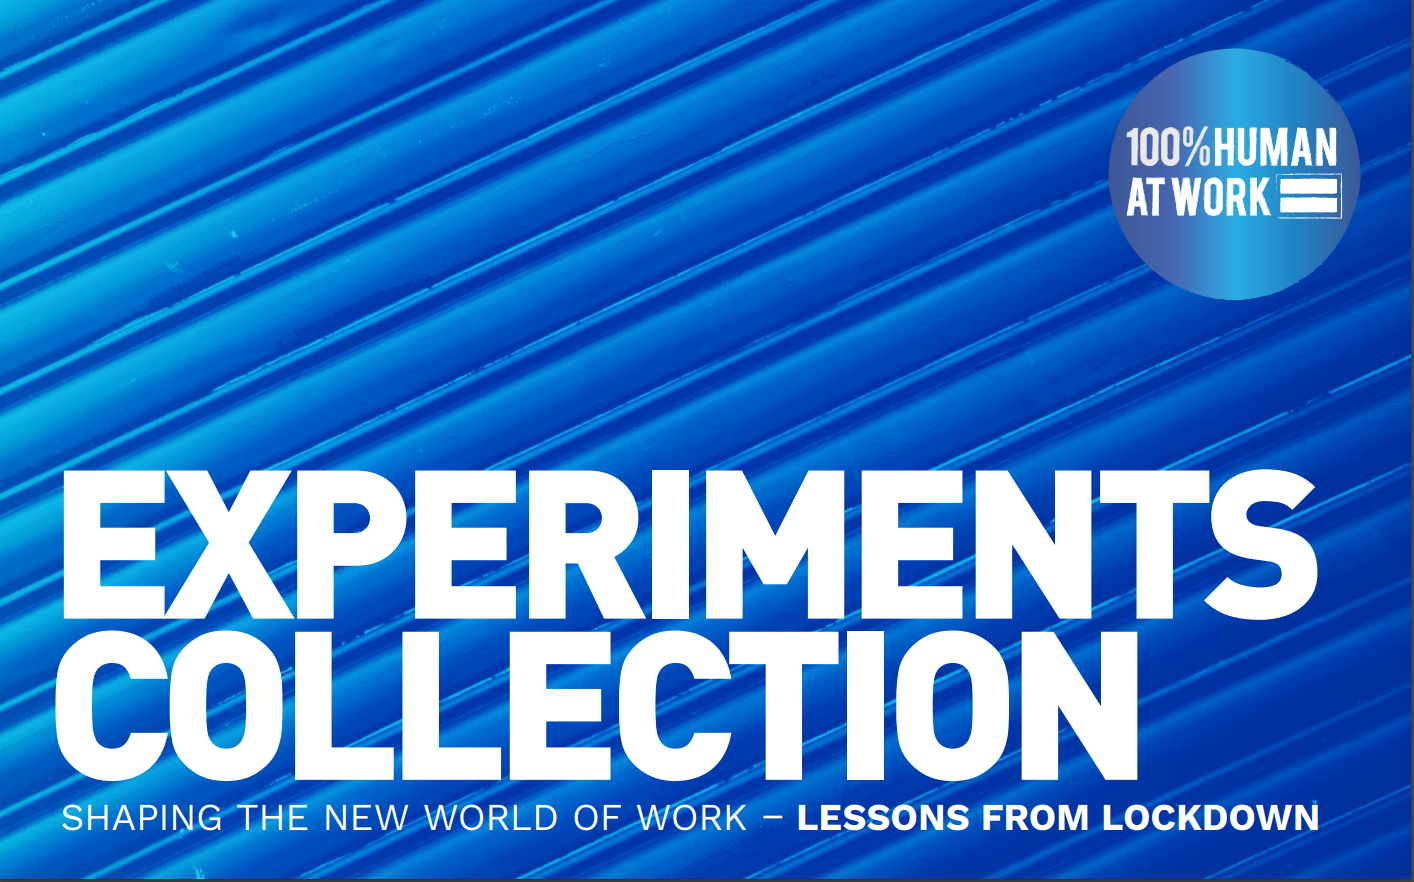 Experiments Collection  - Lessons from Lockdown